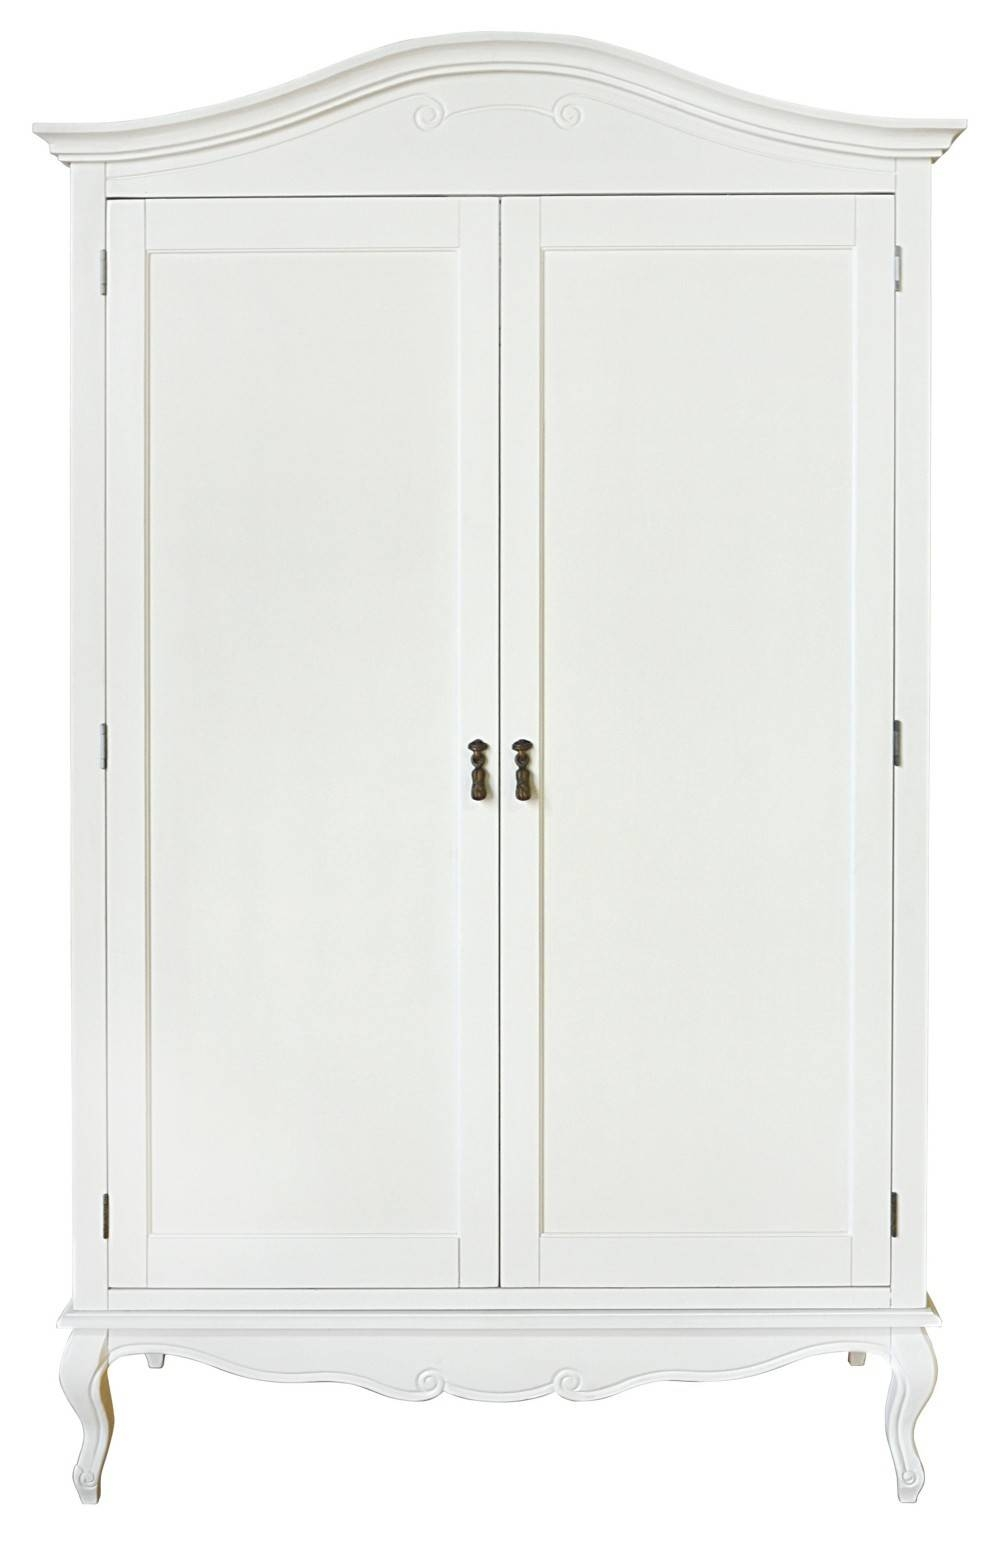 Wardrobes | Bedroom Furniture Direct Intended For Childrens Double Rail Wardrobes (View 30 of 30)